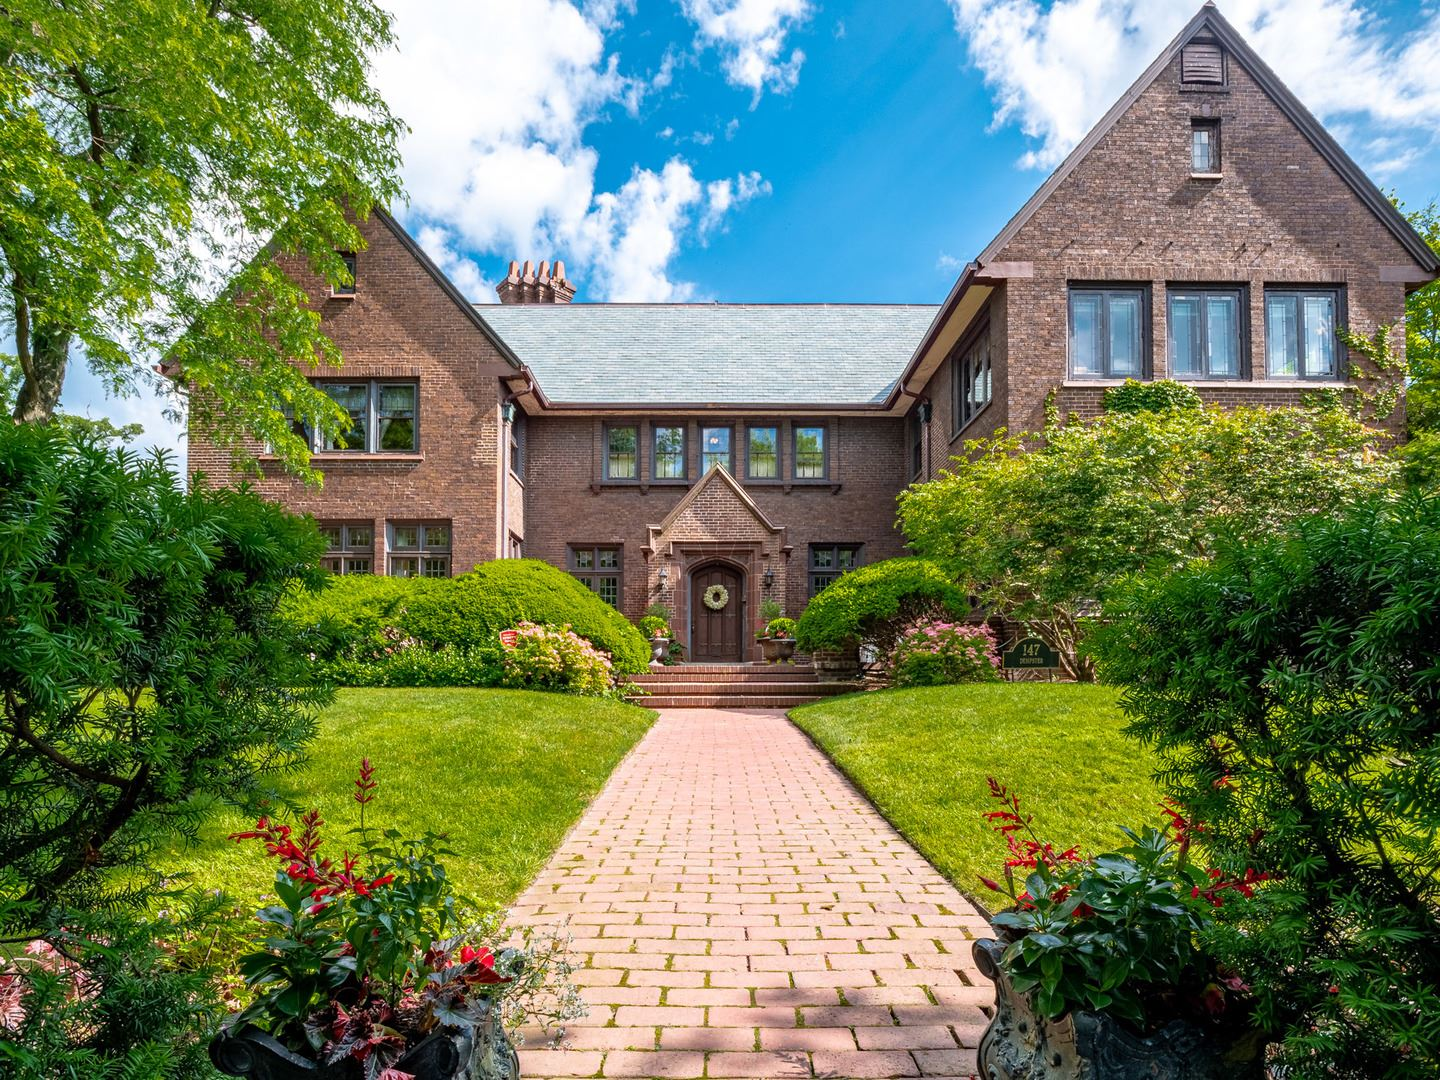 Photo for 147 Dempster Street, Evanston, IL 60201 (MLS # 10946695)